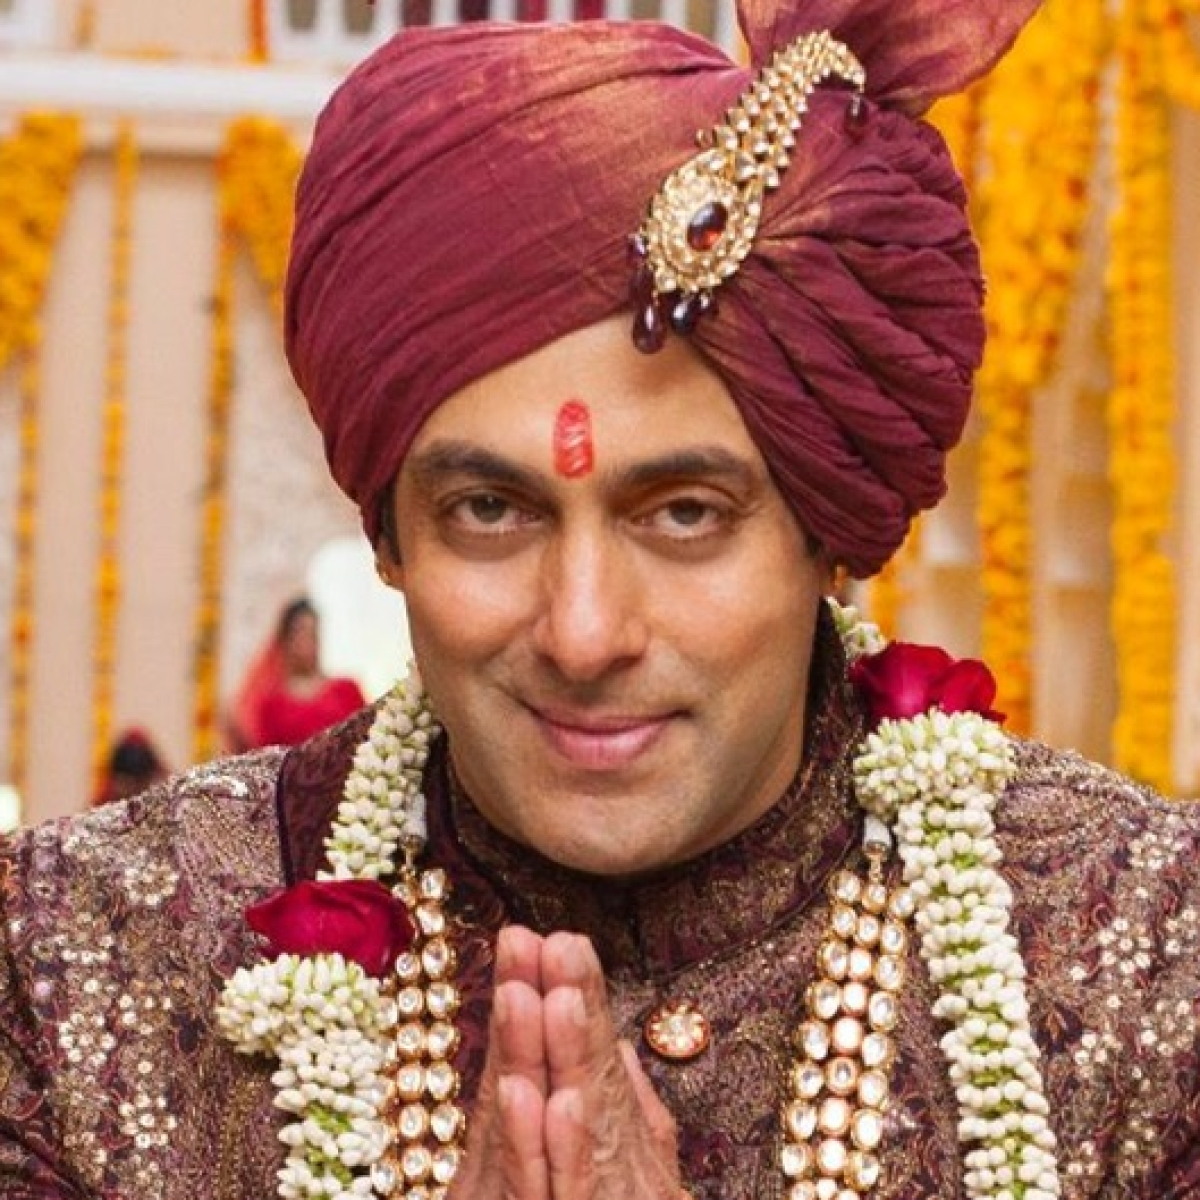 When Salman Khan called off his wedding just 5-6 days before the big day